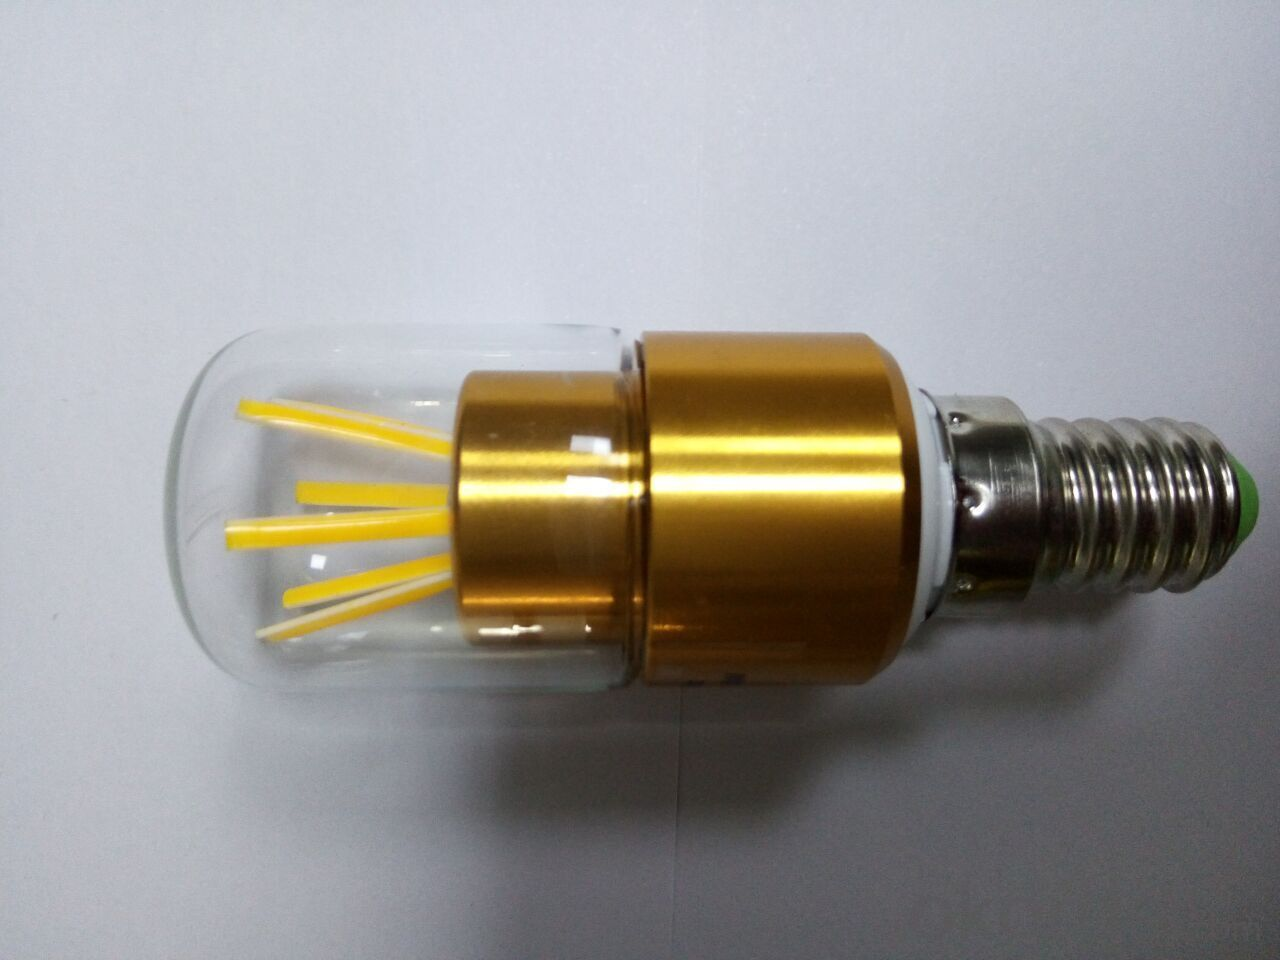 LED FILAMENT LAMP BULB C TYPE 4W G9 LAMP NEW